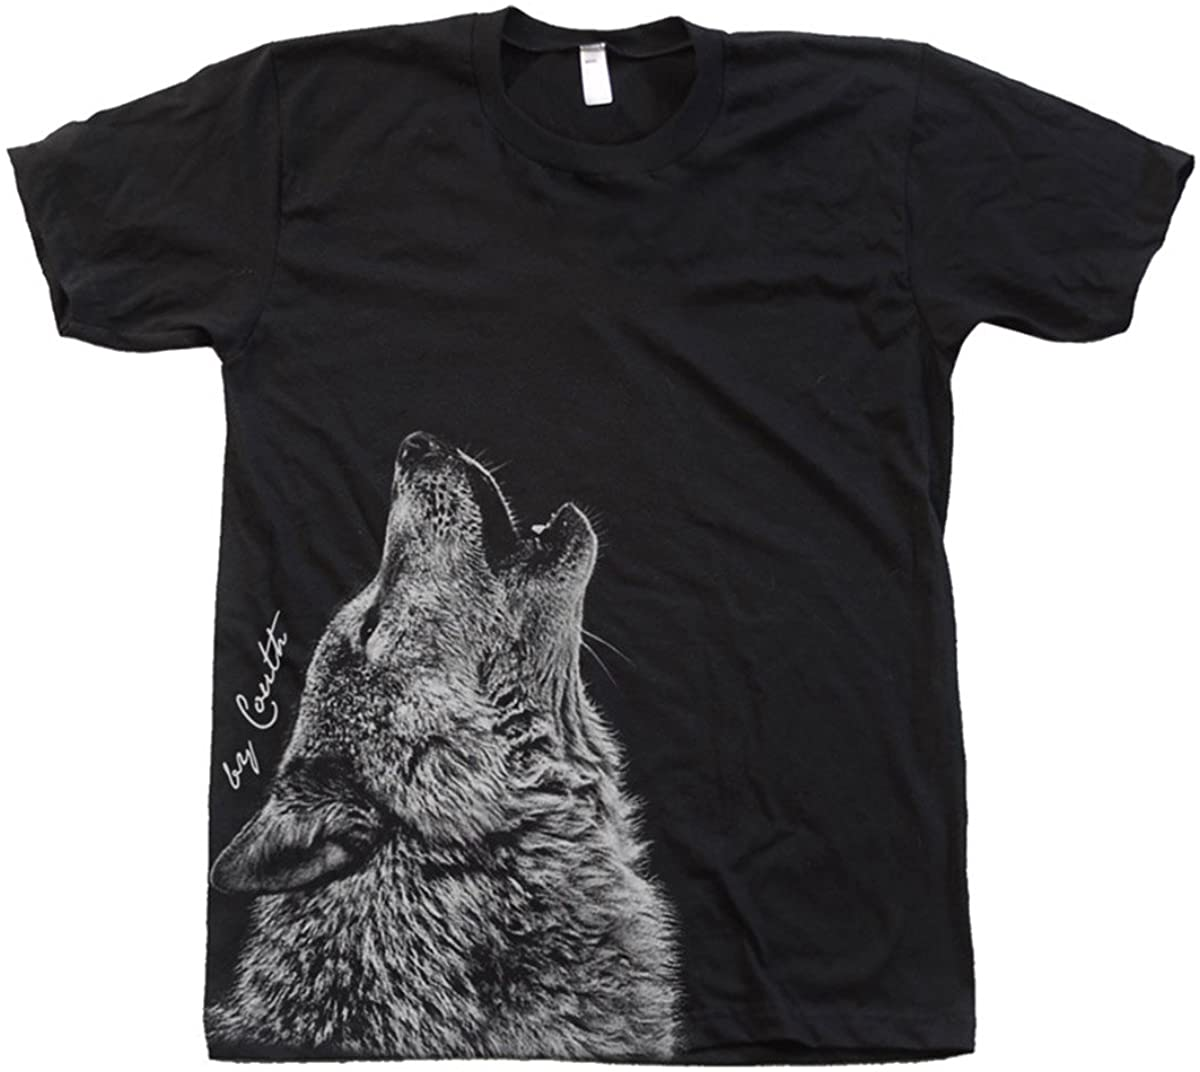 Summer Cotton Men T-shirt Couthclothing Men's Wolf American Apparel Crew O-neck Short Sleeve Graphic T-shirts Men Clothing S-3XL 2021 summer o neck men t shirt classic hot rods men t shirt high quality cotton t shirt printing short sleeve men clothing s 3xl